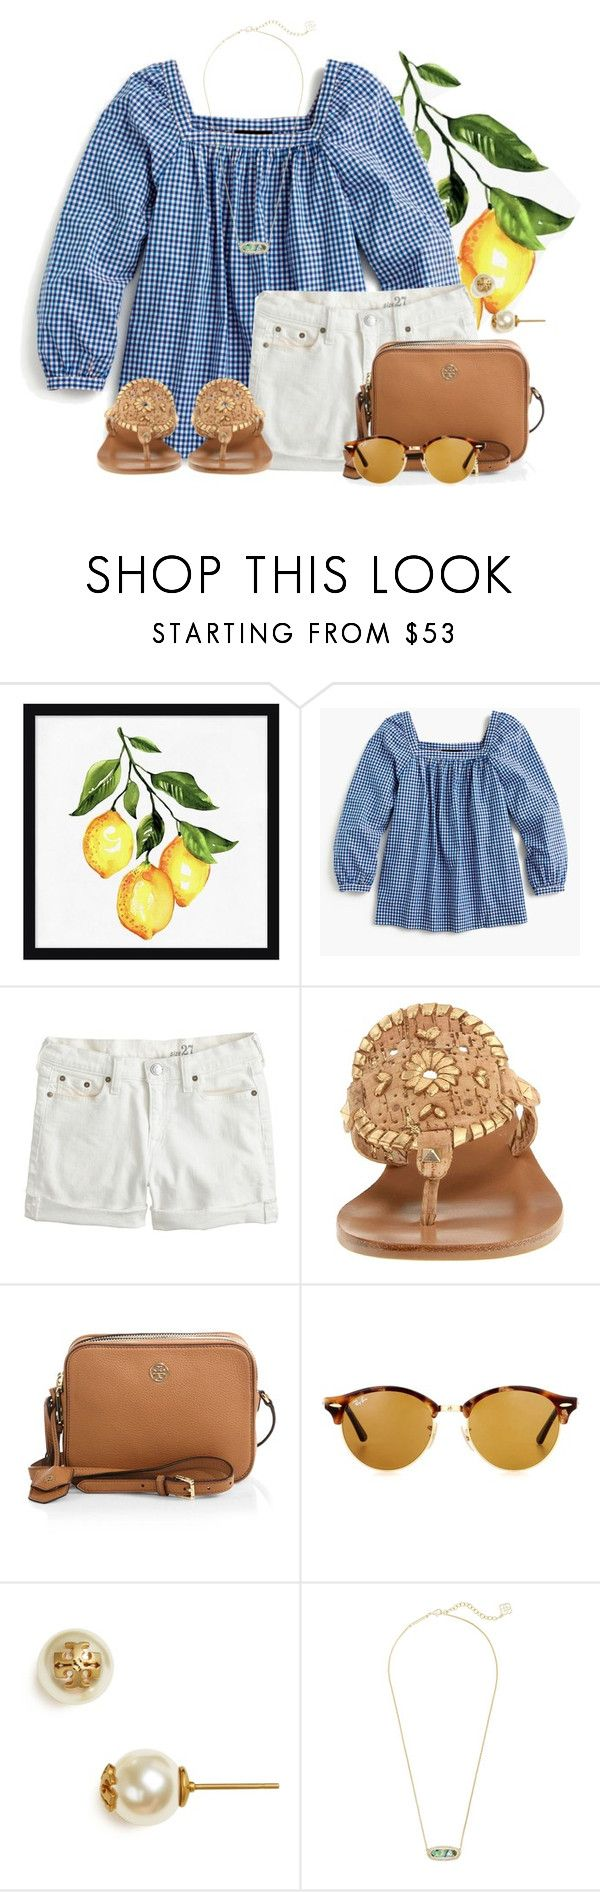 """☀️sun please☀️"" by flroasburn ❤ liked on Polyvore featuring Pottery Barn, J.Crew, Jack Rogers, Tory Burch, Ray-Ban and Kendra Scott"